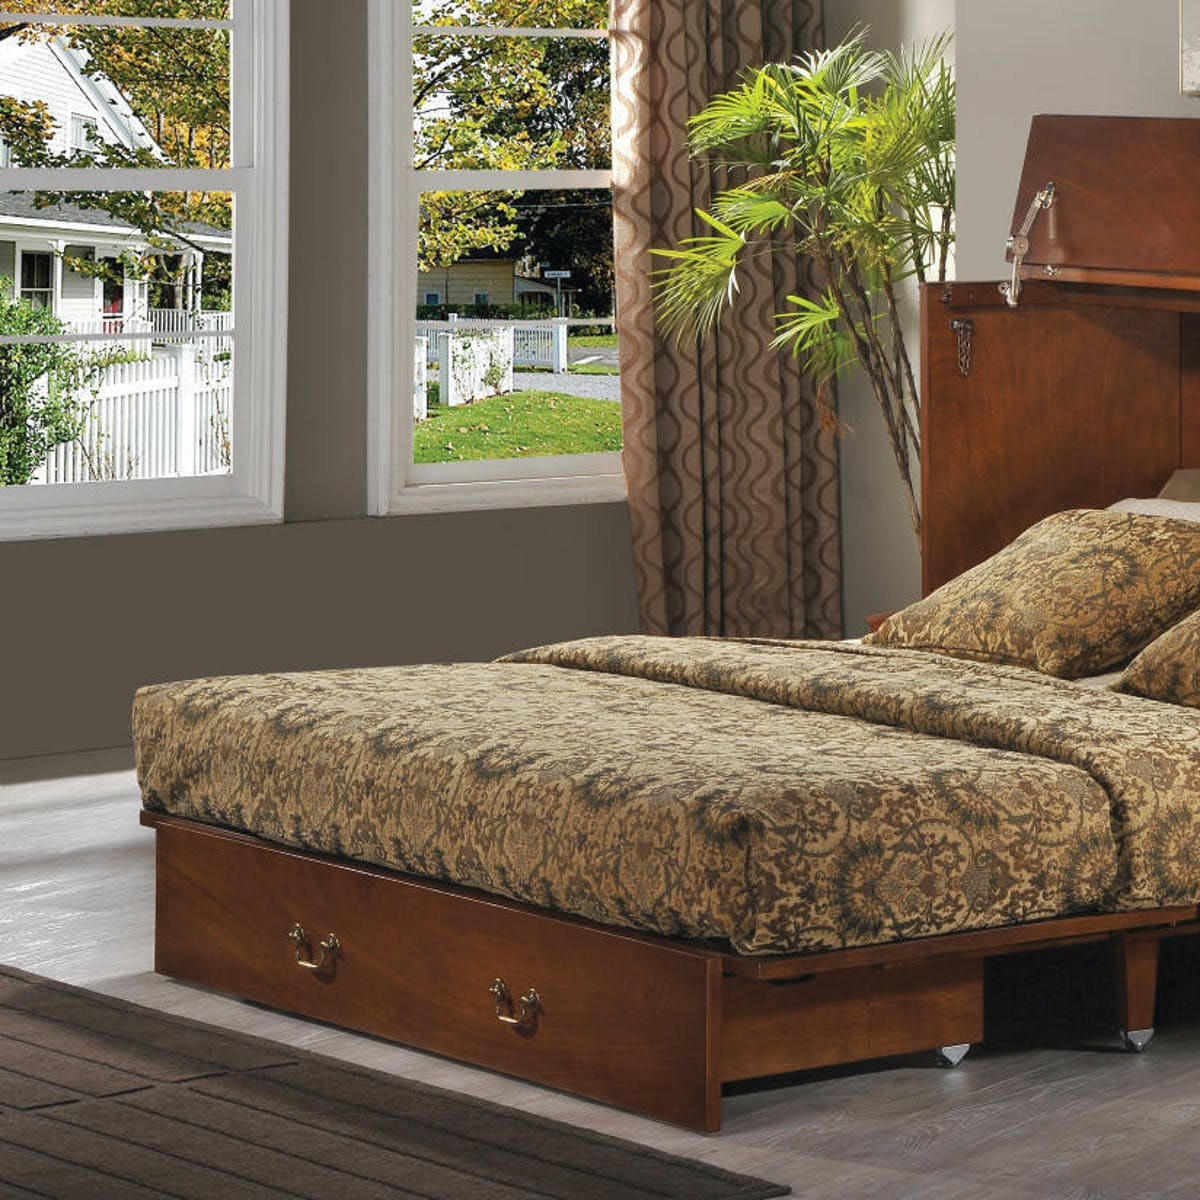 Who Invented The Bed >> What The Former Slave Who Invented Small Apartment Furniture